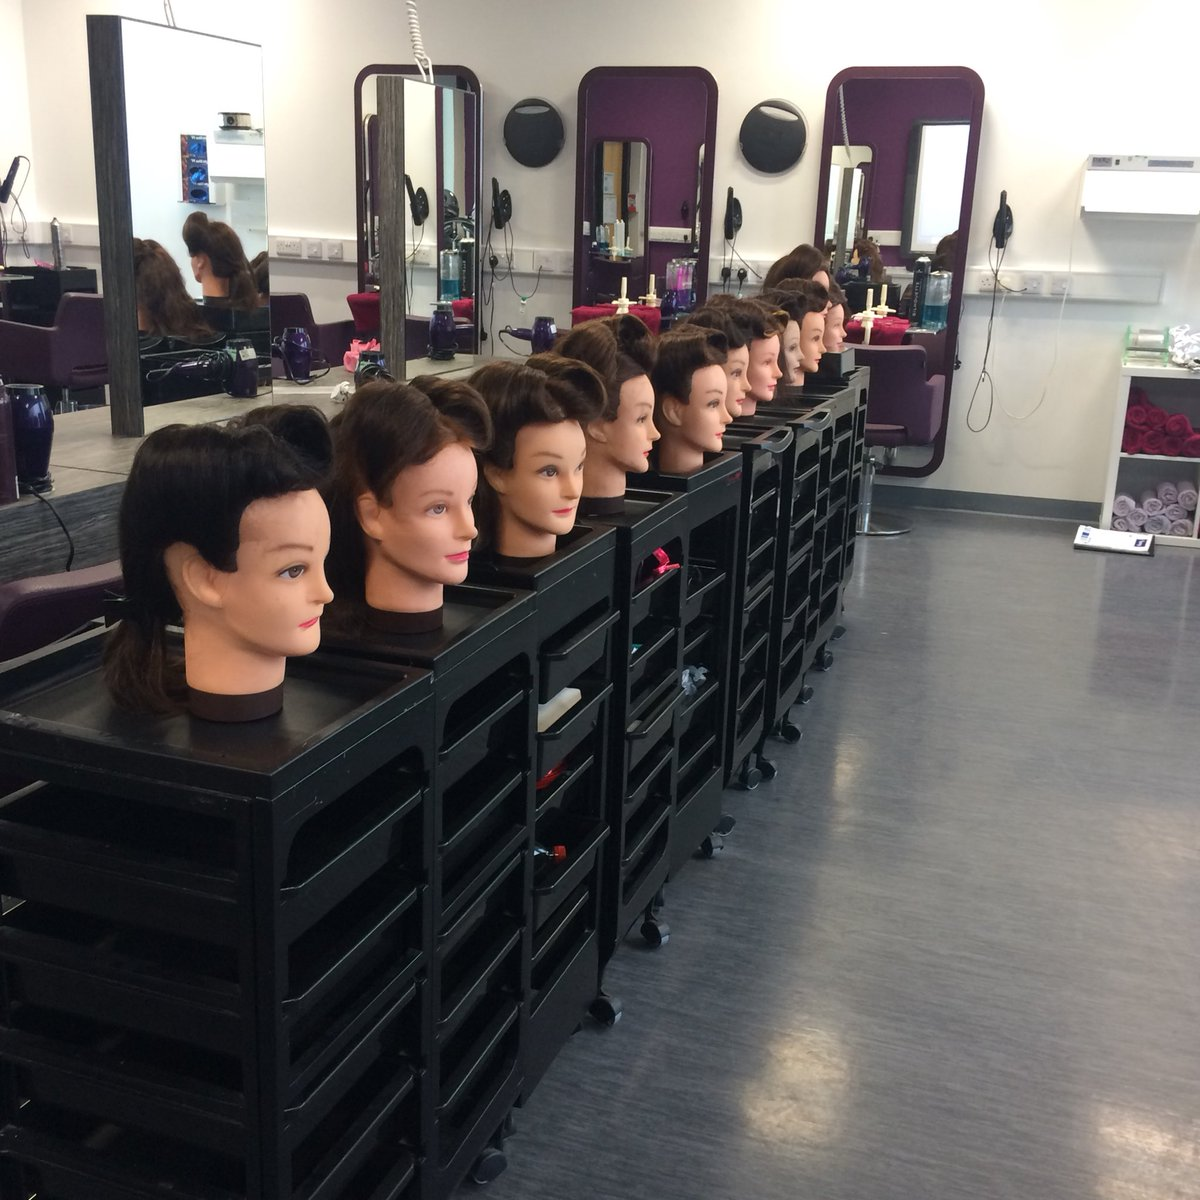 Victory roll line up #practise #technicals #hair @NCCHairBeauty @NelsonColneColl<br>http://pic.twitter.com/KaOLJwb2WT